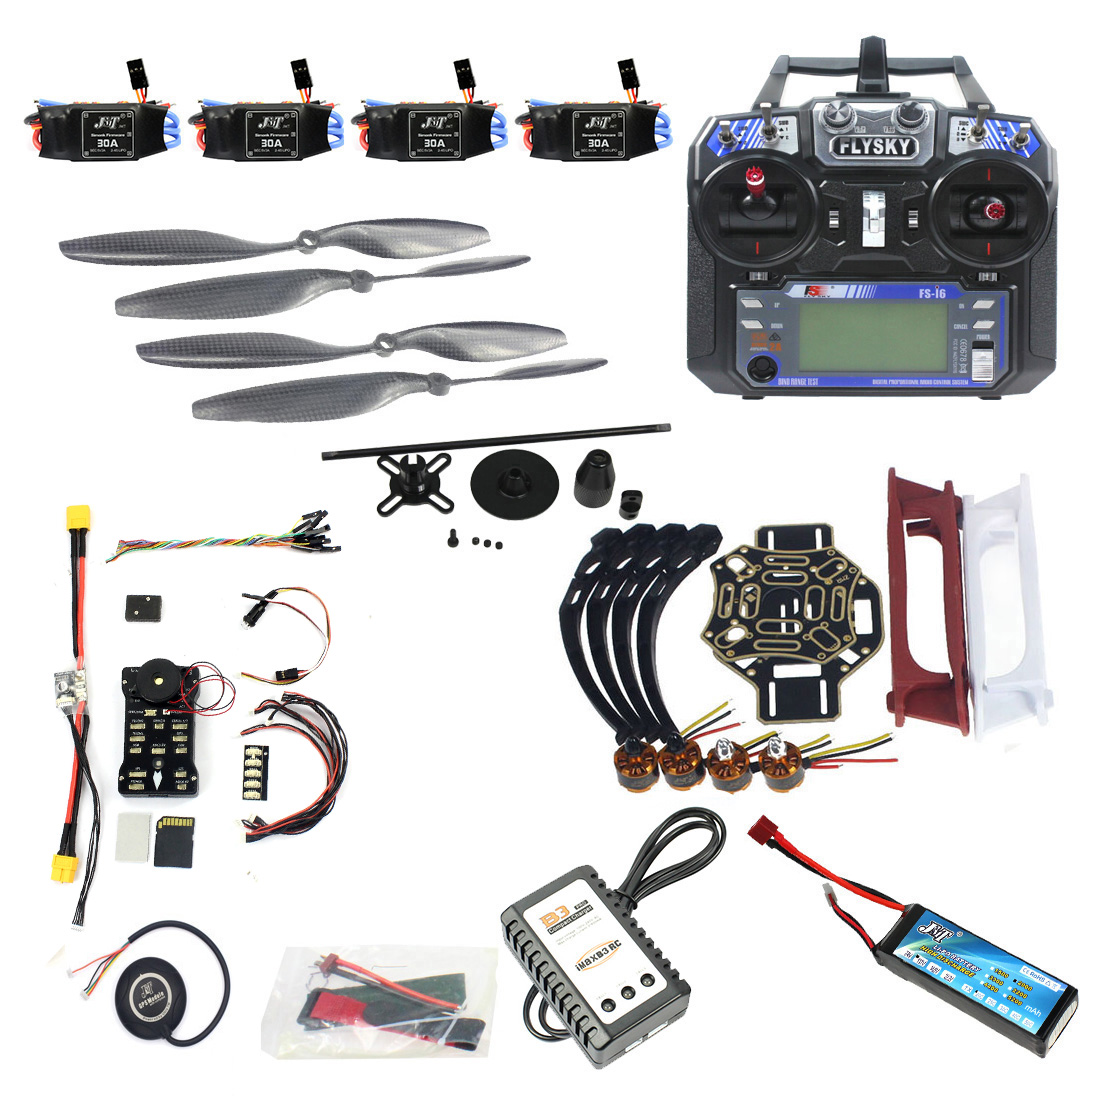 DIY FPV Drone Quadcopter 4-assige Aircraft Kit 450 Frame PXI PX4 ​​Flight Control 920KV Motor GPS FS-i6 Zender F02192-AC